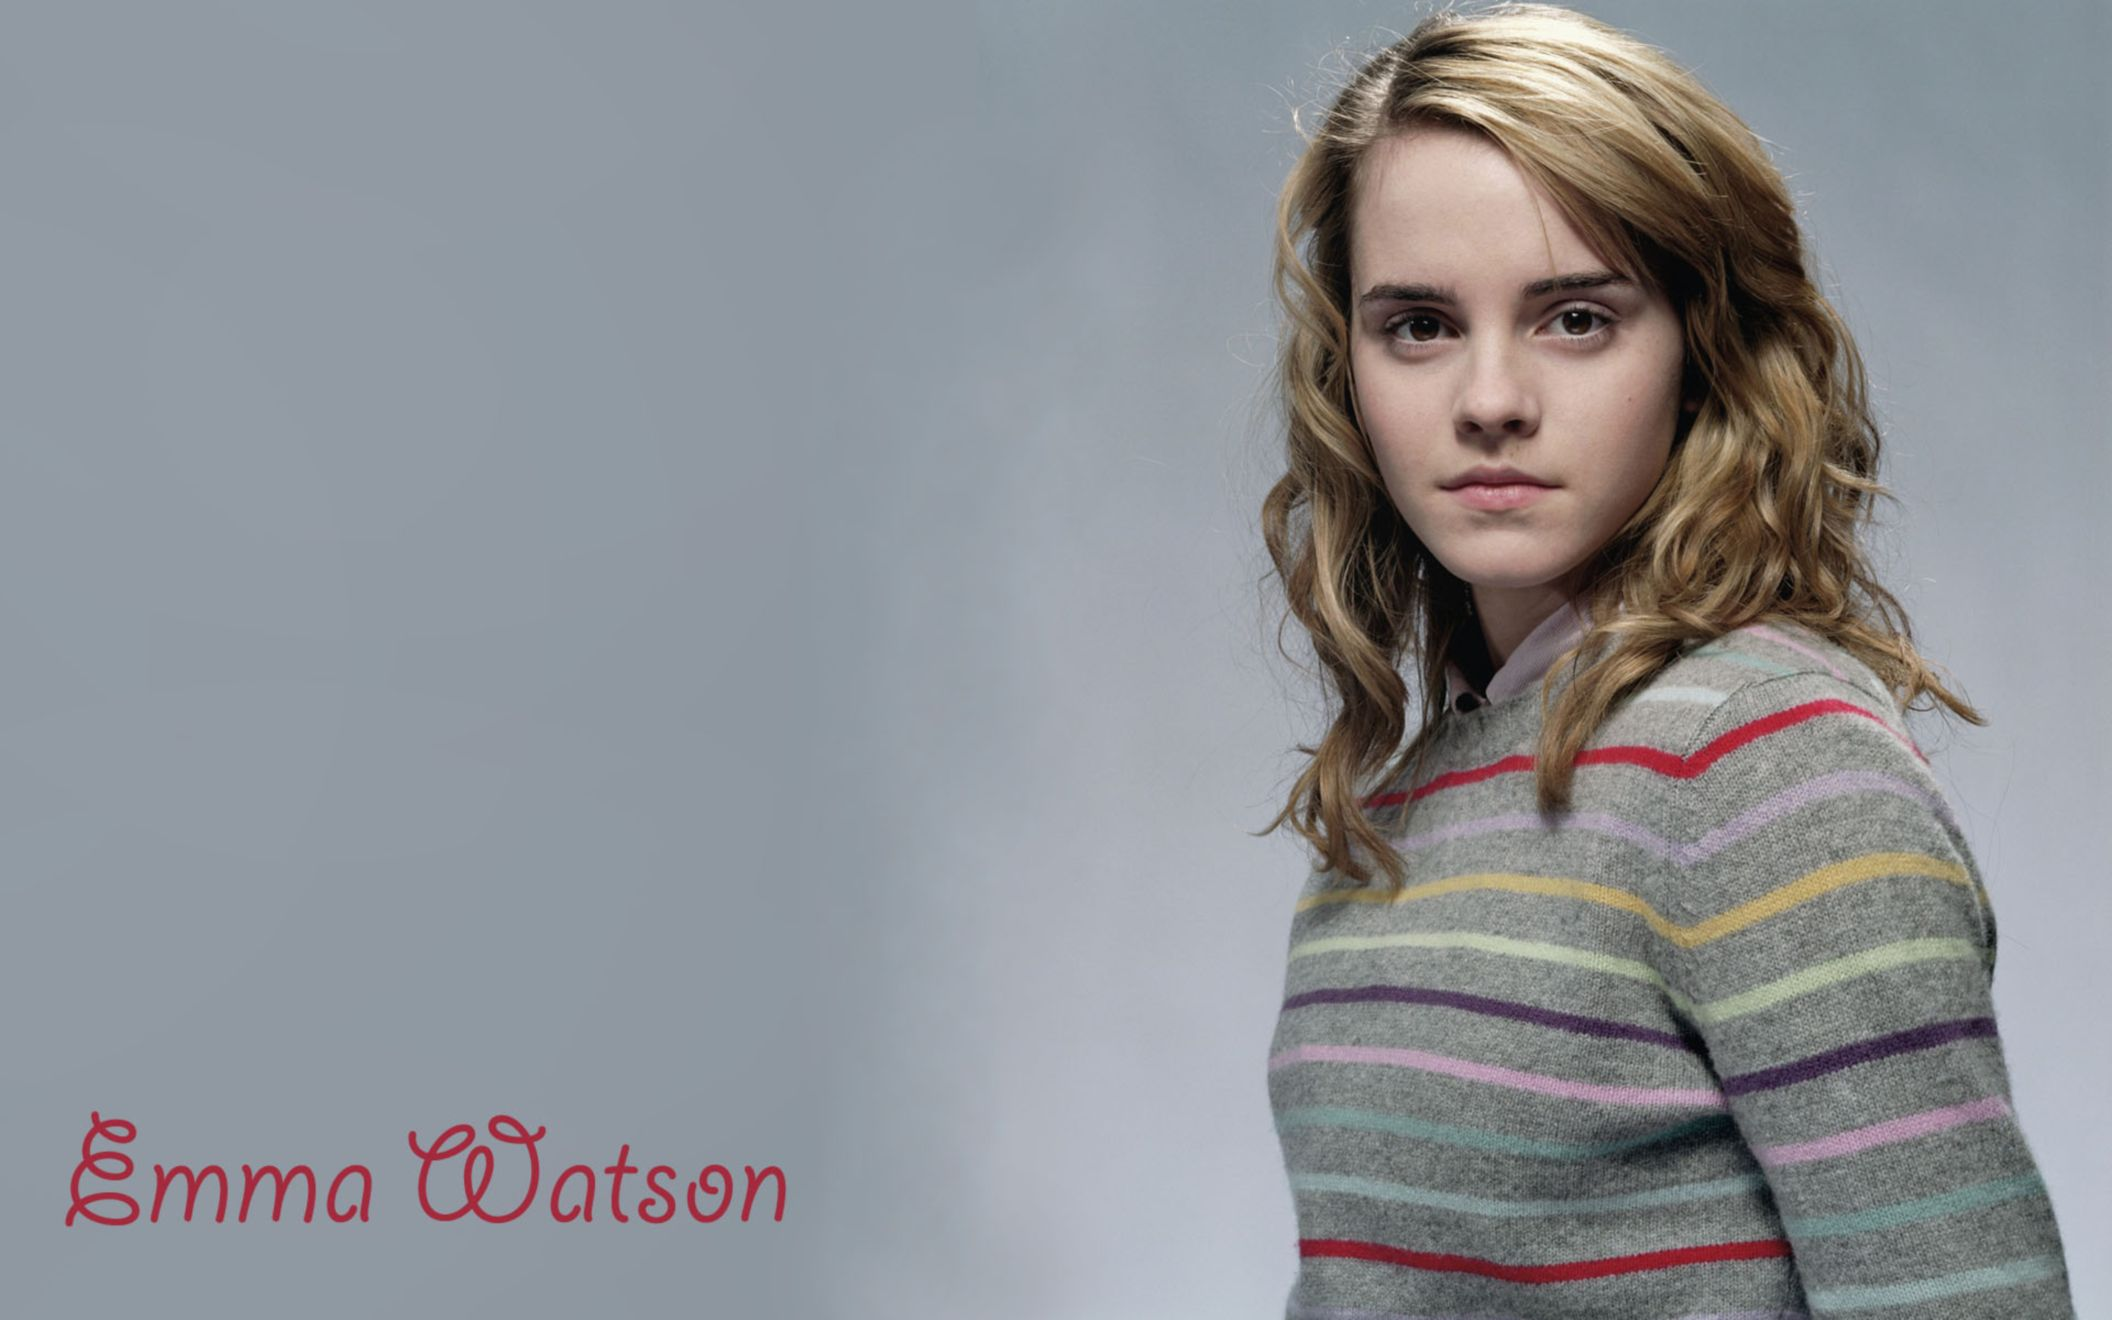 Download free HD Emma Watson Wide High Quality 2 Wide Wallpaper, image